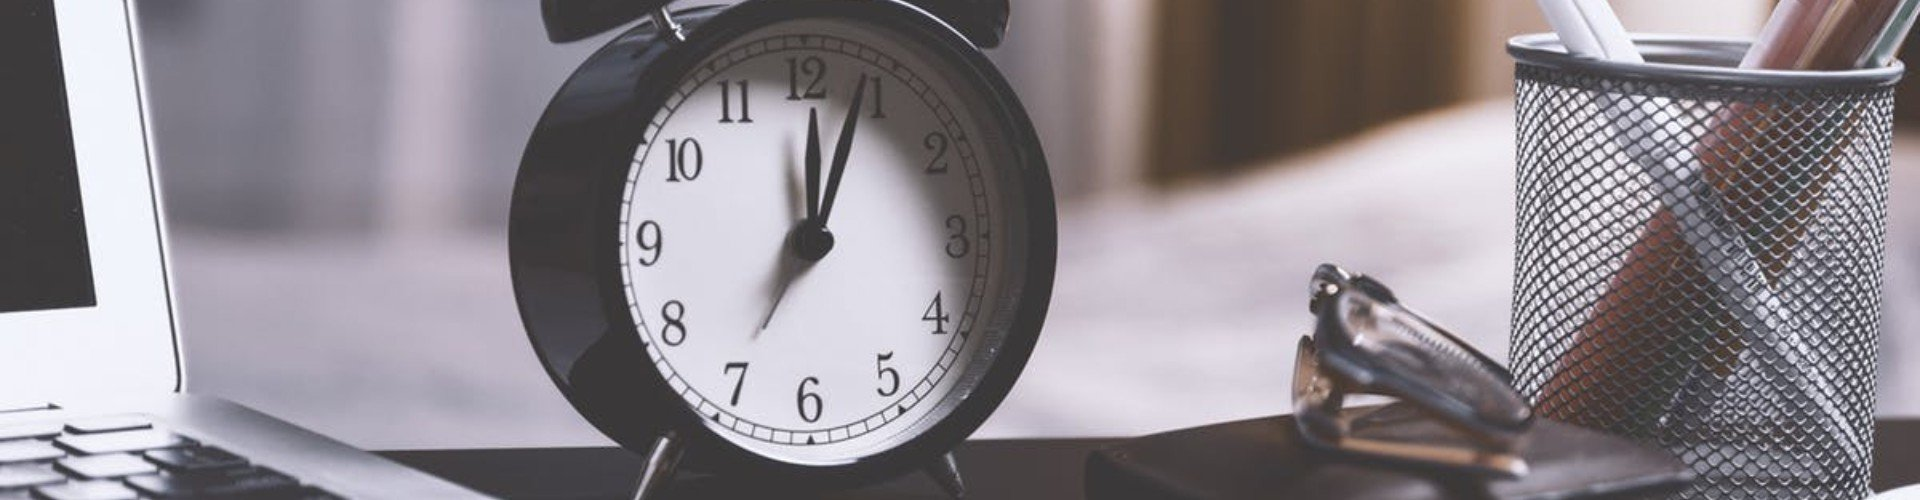 30+ Time Management Skills Examples & Tips on How to Improve